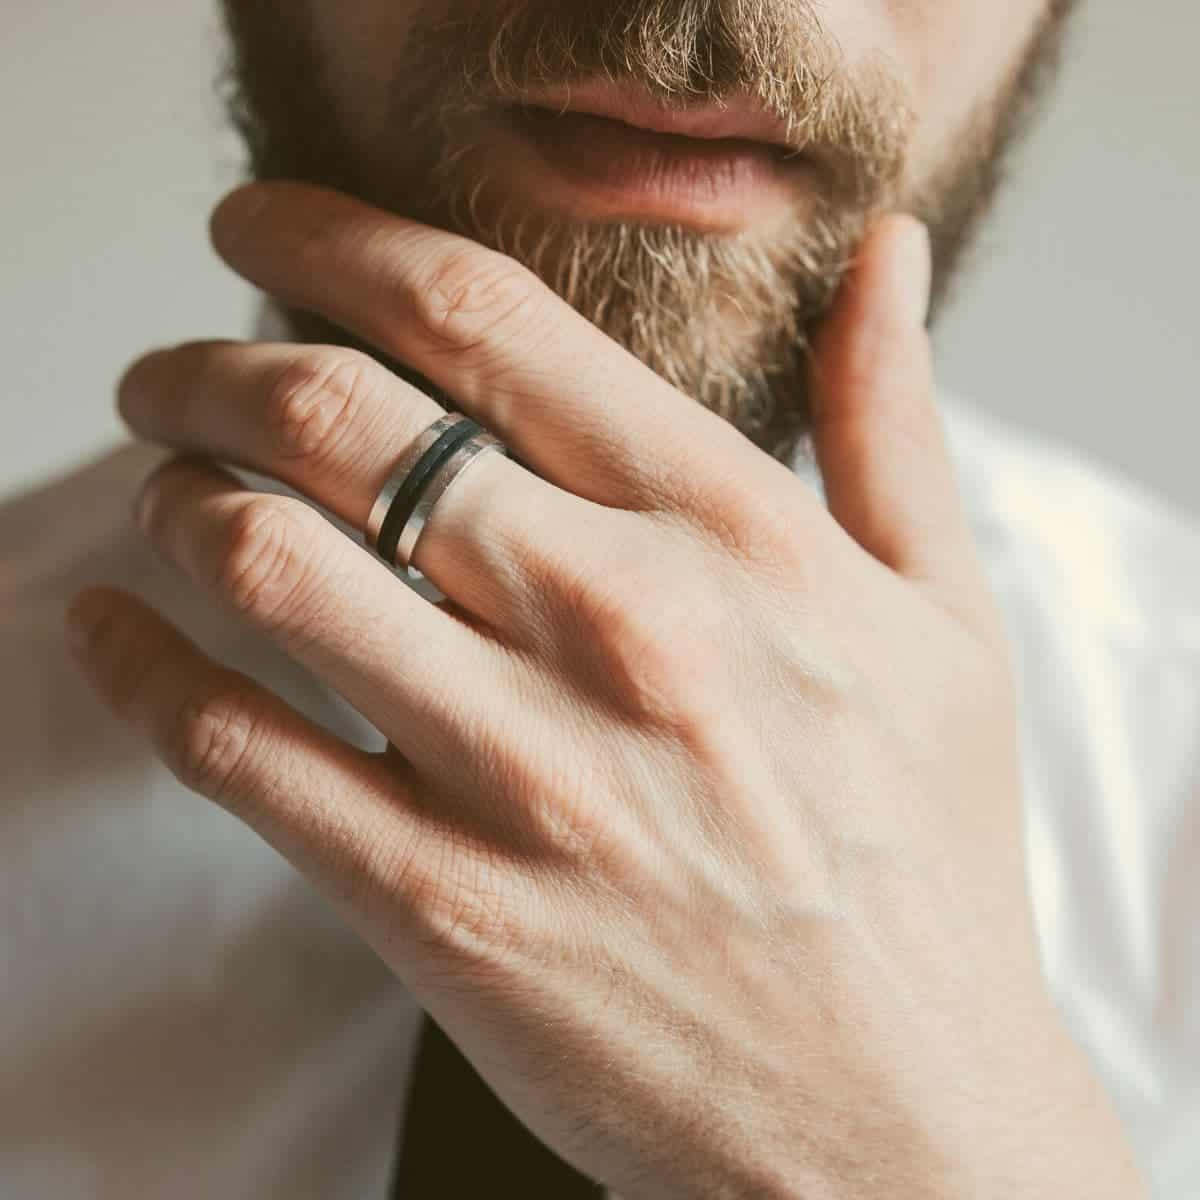 Close-up of a ring on a person's hand while they touch their beard.